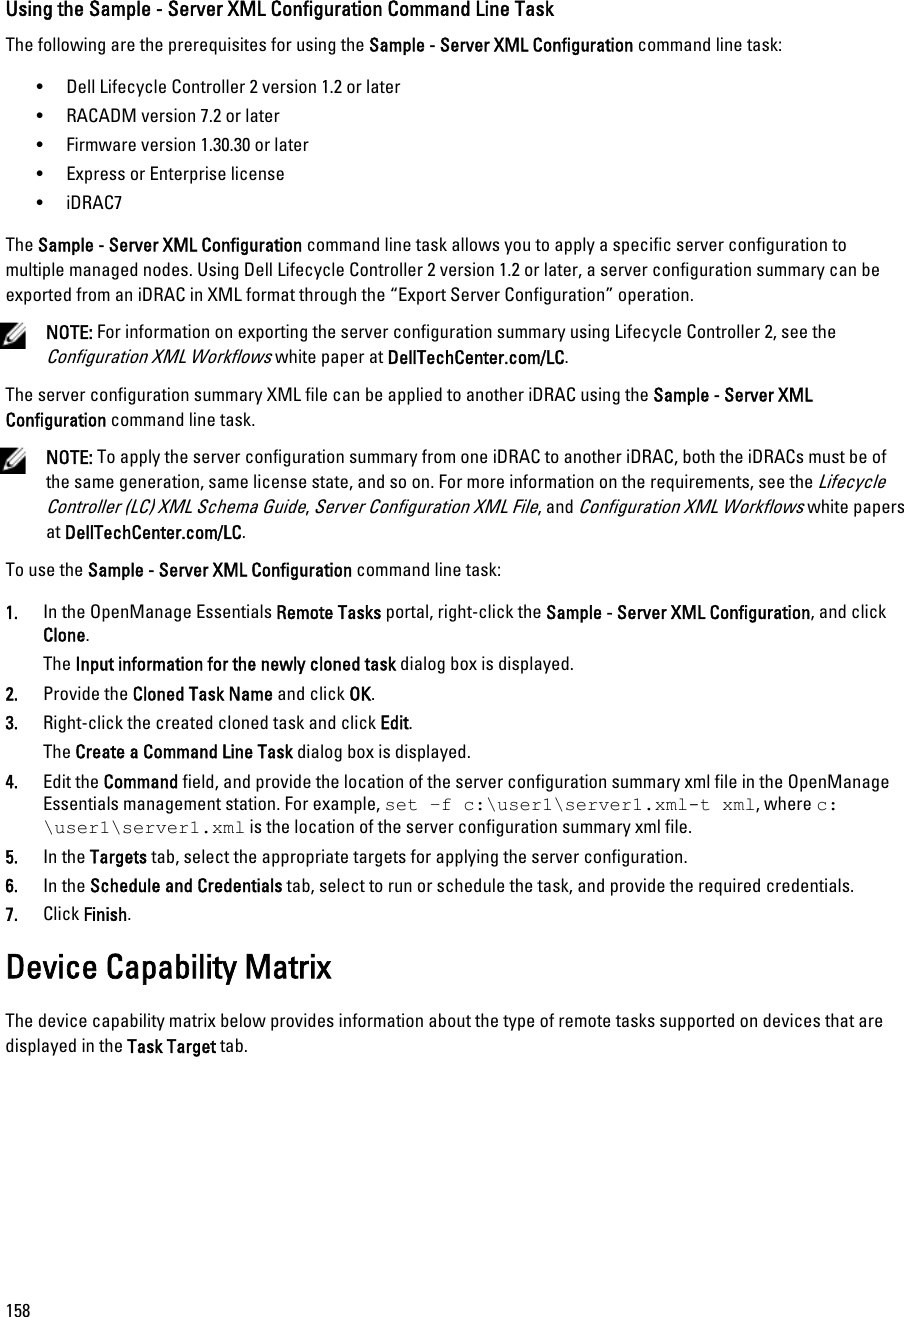 Dell Openmanage Essentials V1 2 Users Manual V1 2 User's Guide